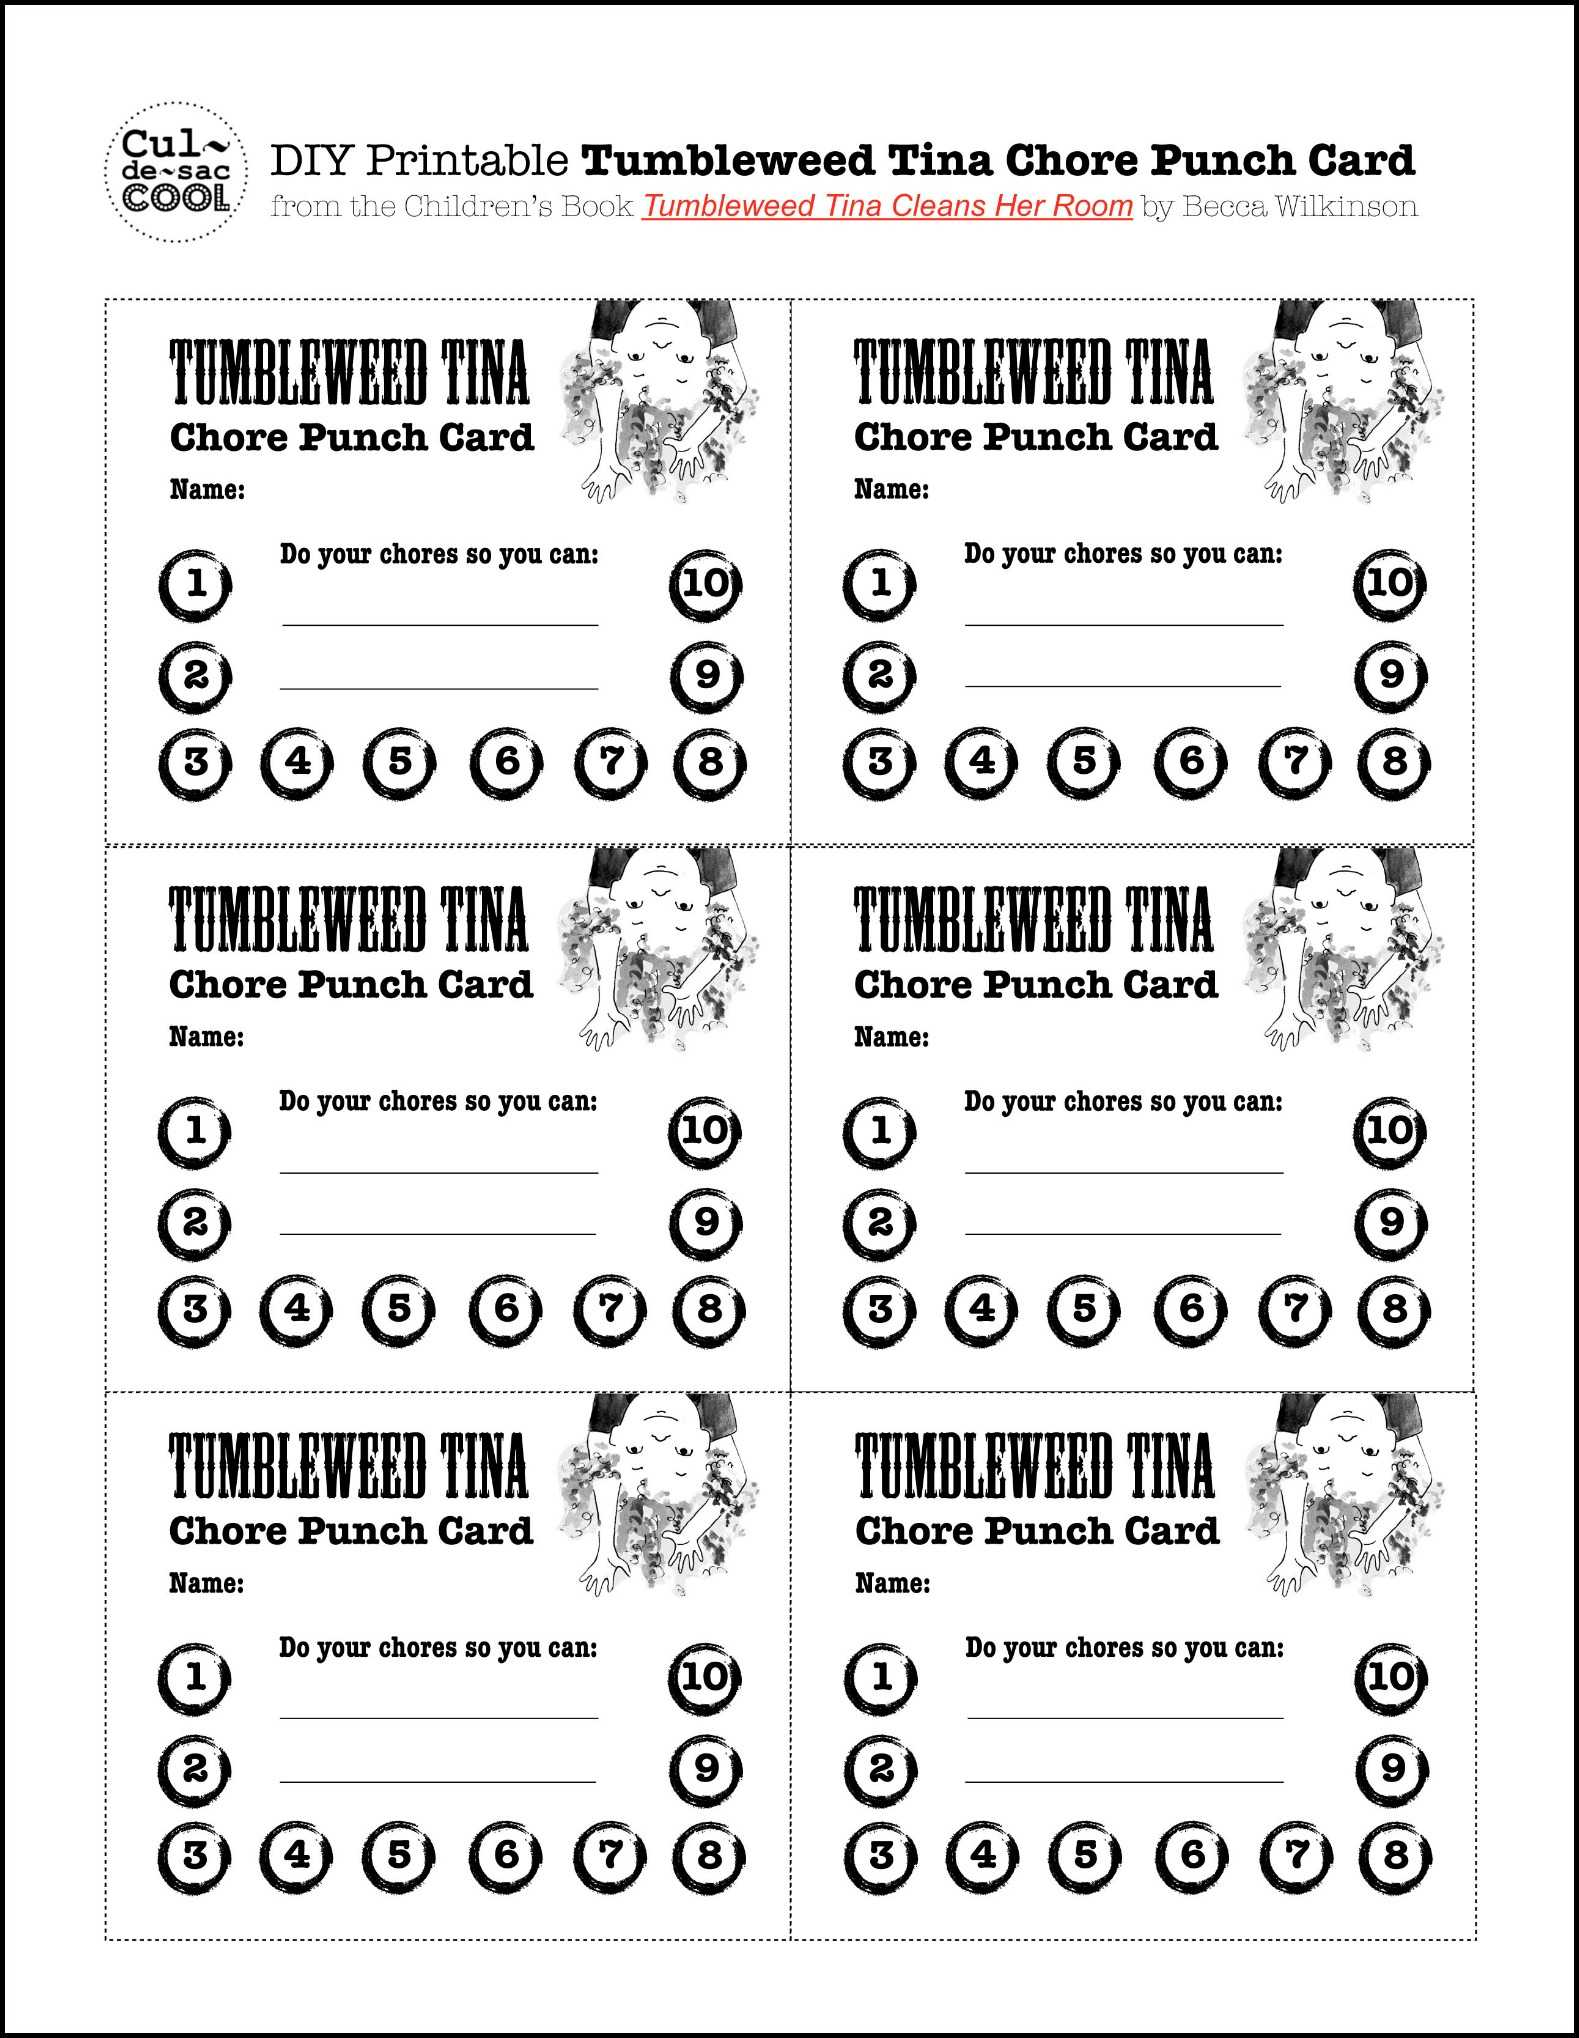 Punch Card Template ] - Batting Cages Punch Card Double Throughout Free Printable Punch Card Template